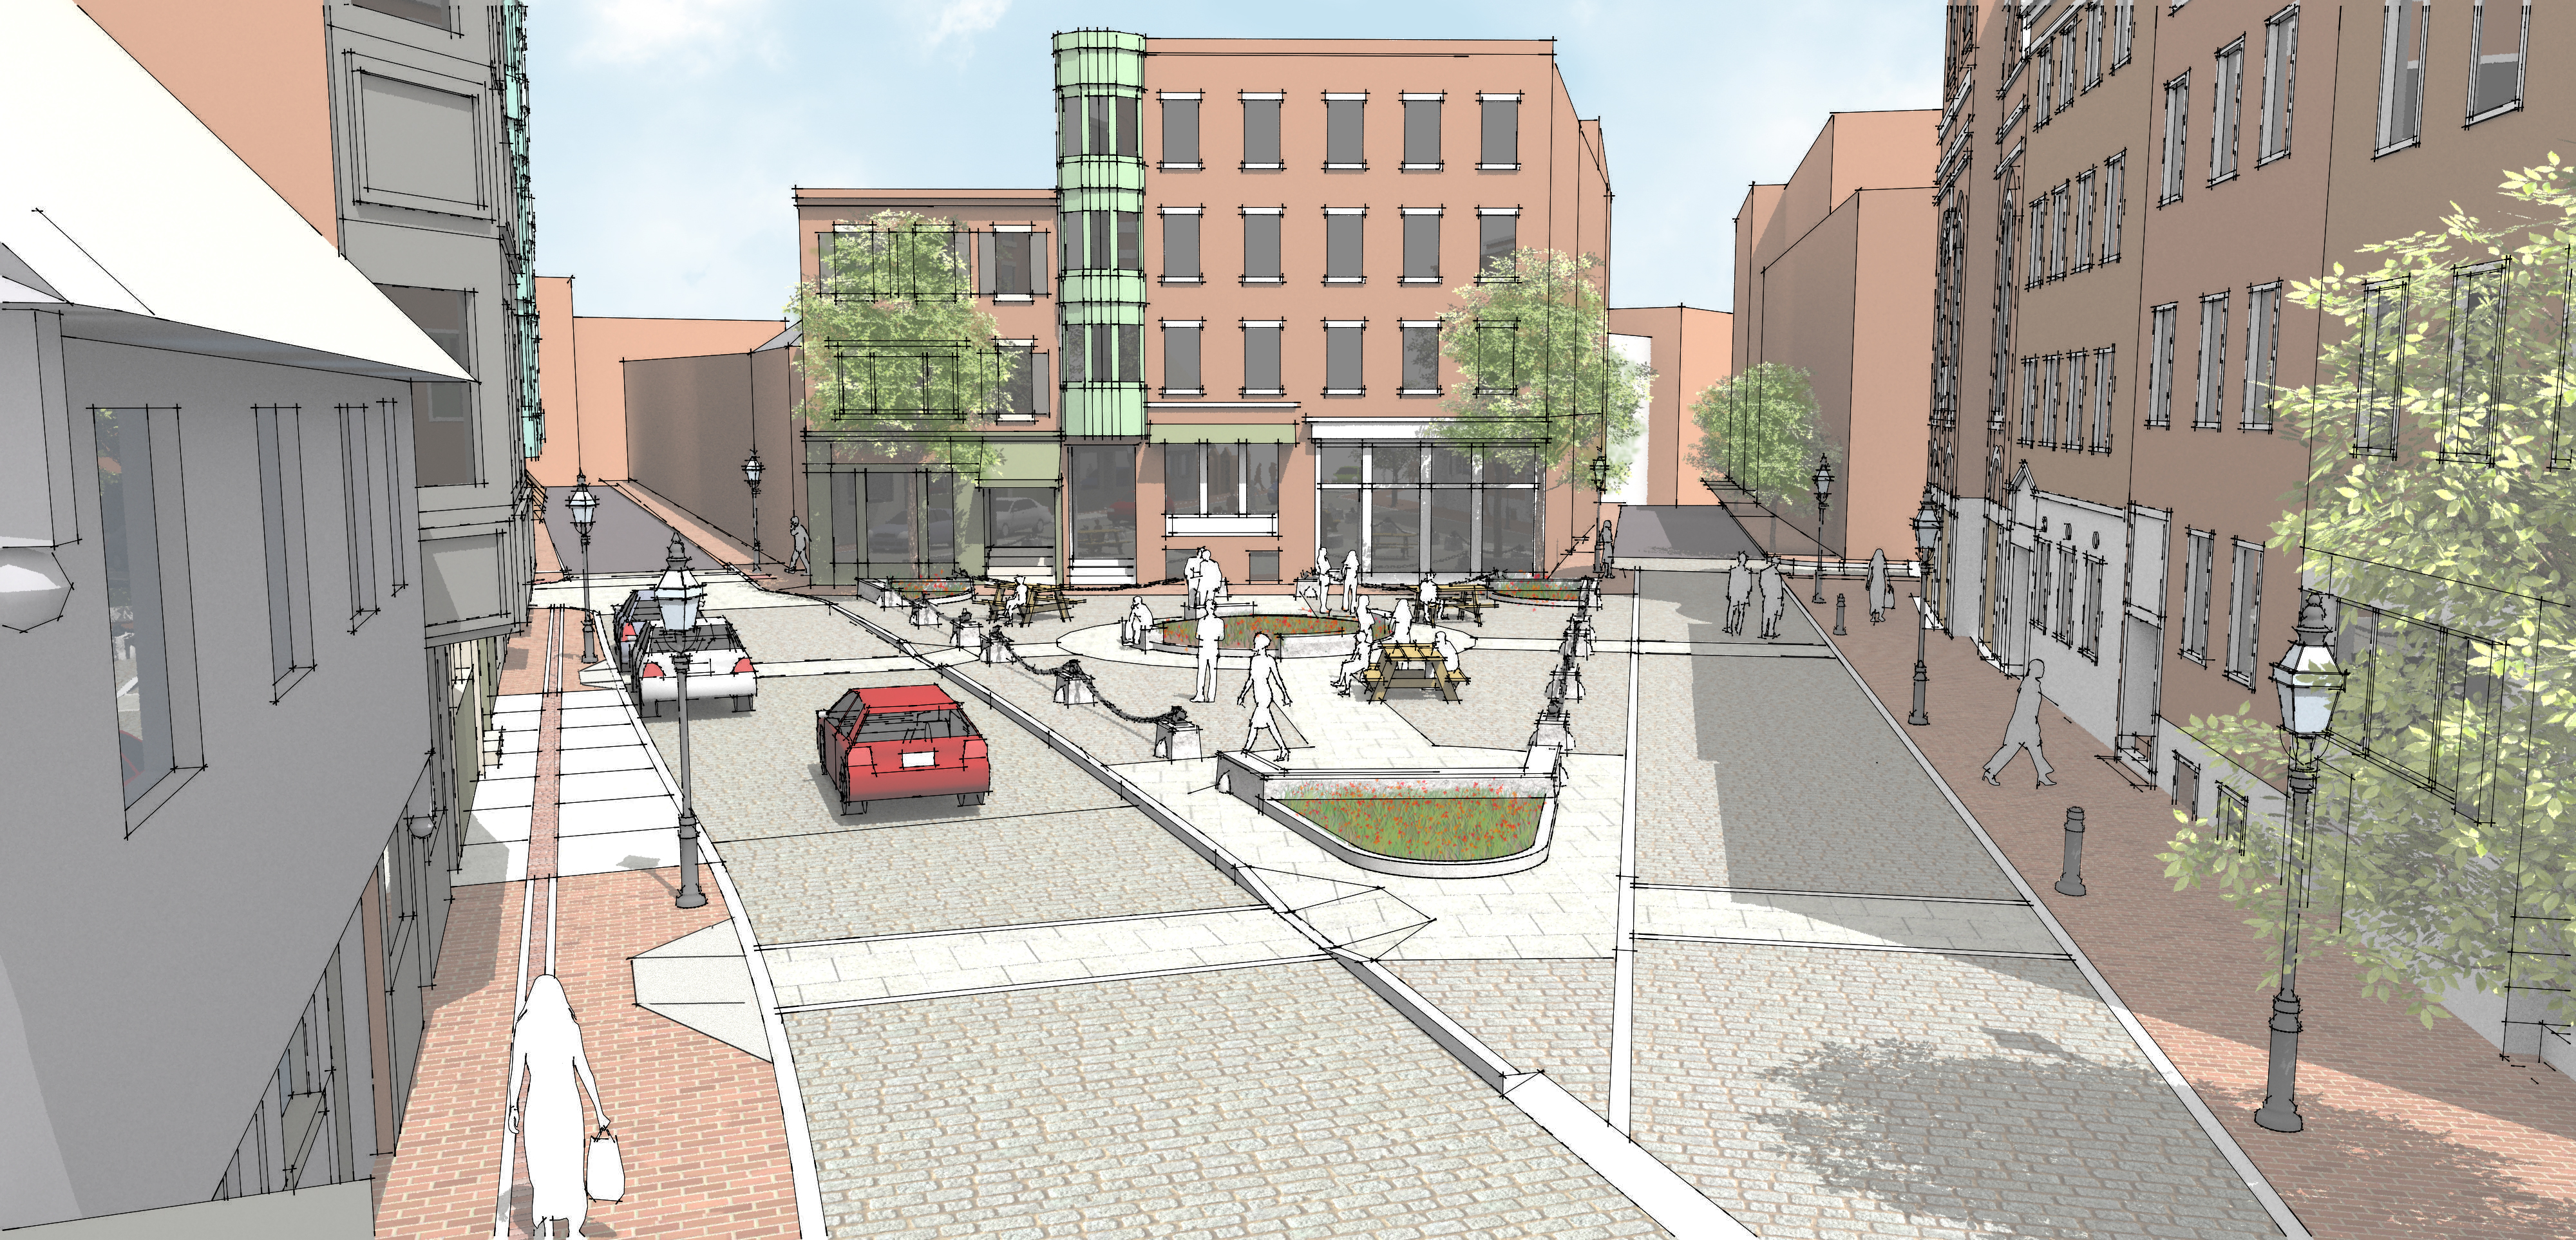 Rendering of North Square Reconstruction slated for 2017 (Boston Public Works)